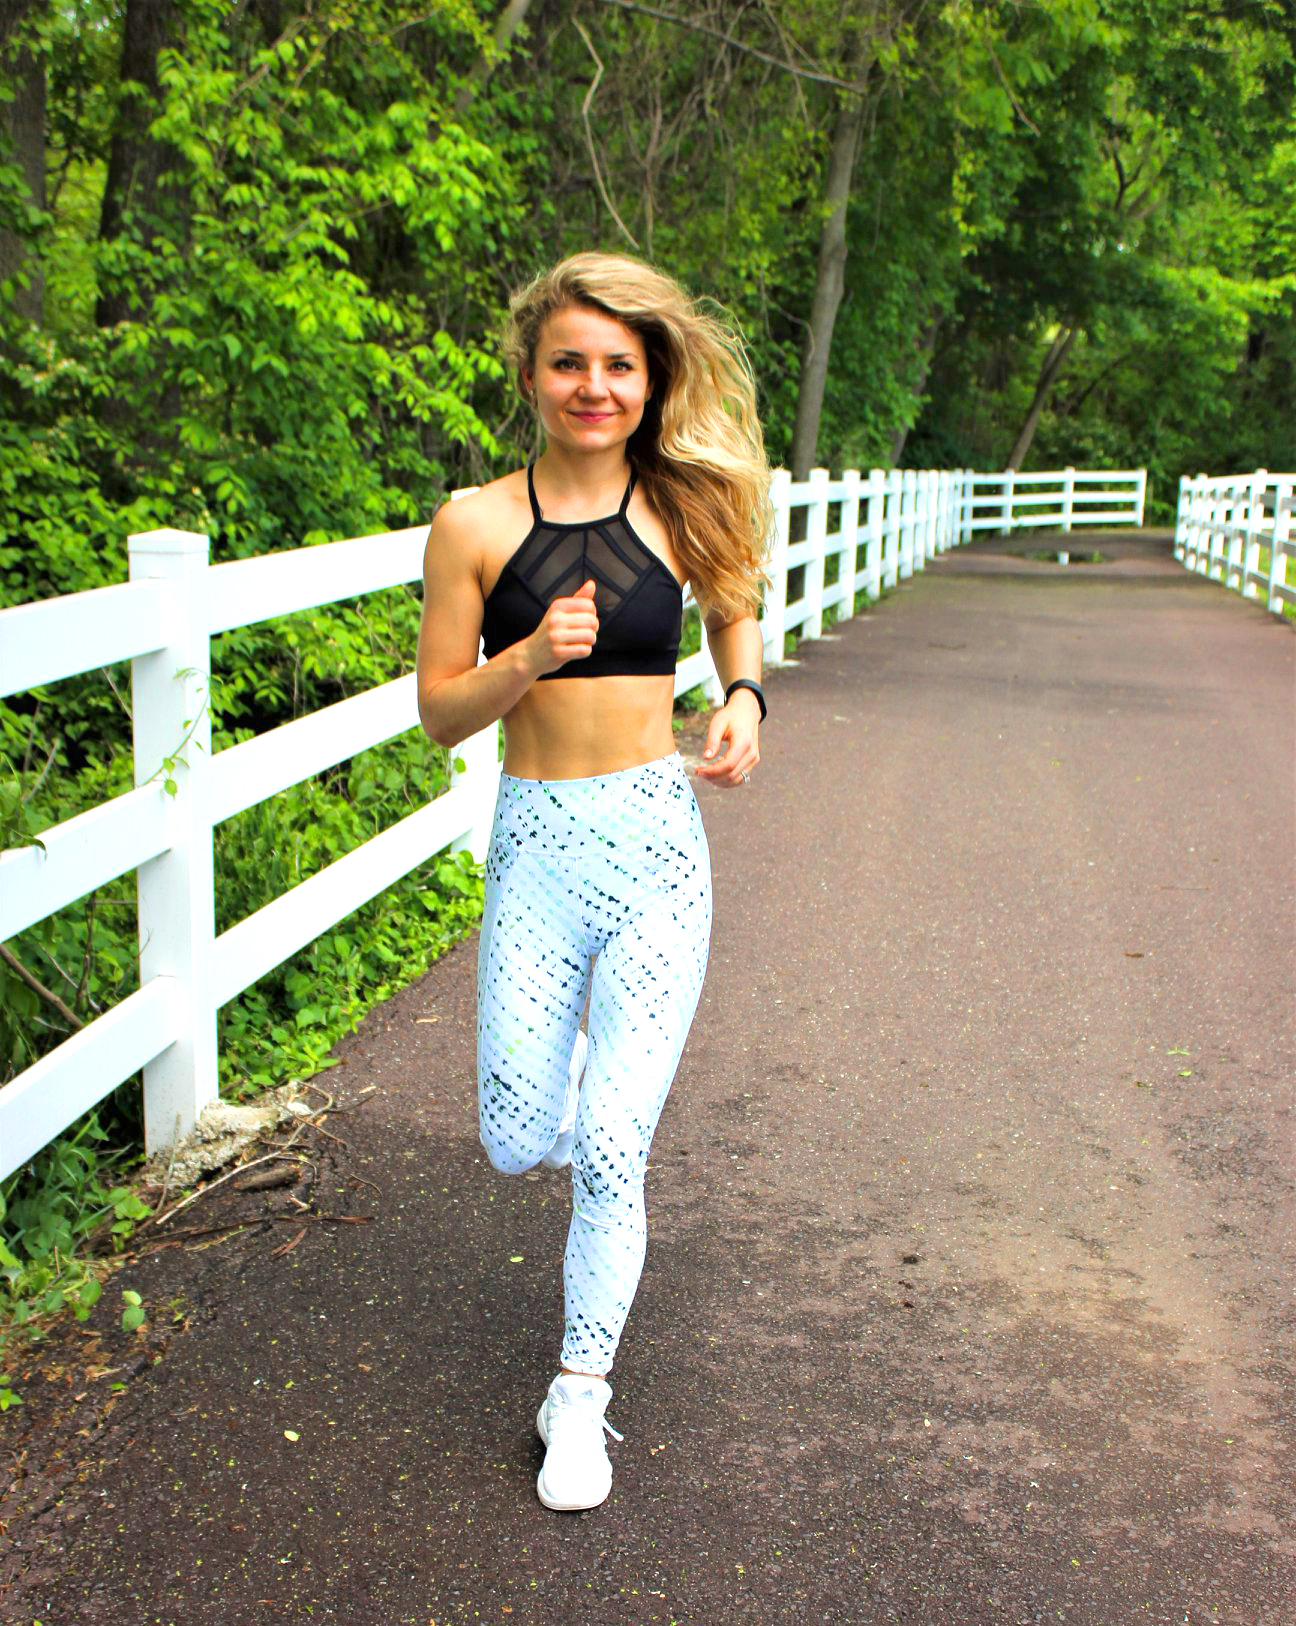 Fitstagram Michelle. Contact information. Wellness warrior bringing ways to live healthier and happier to your finger tips.